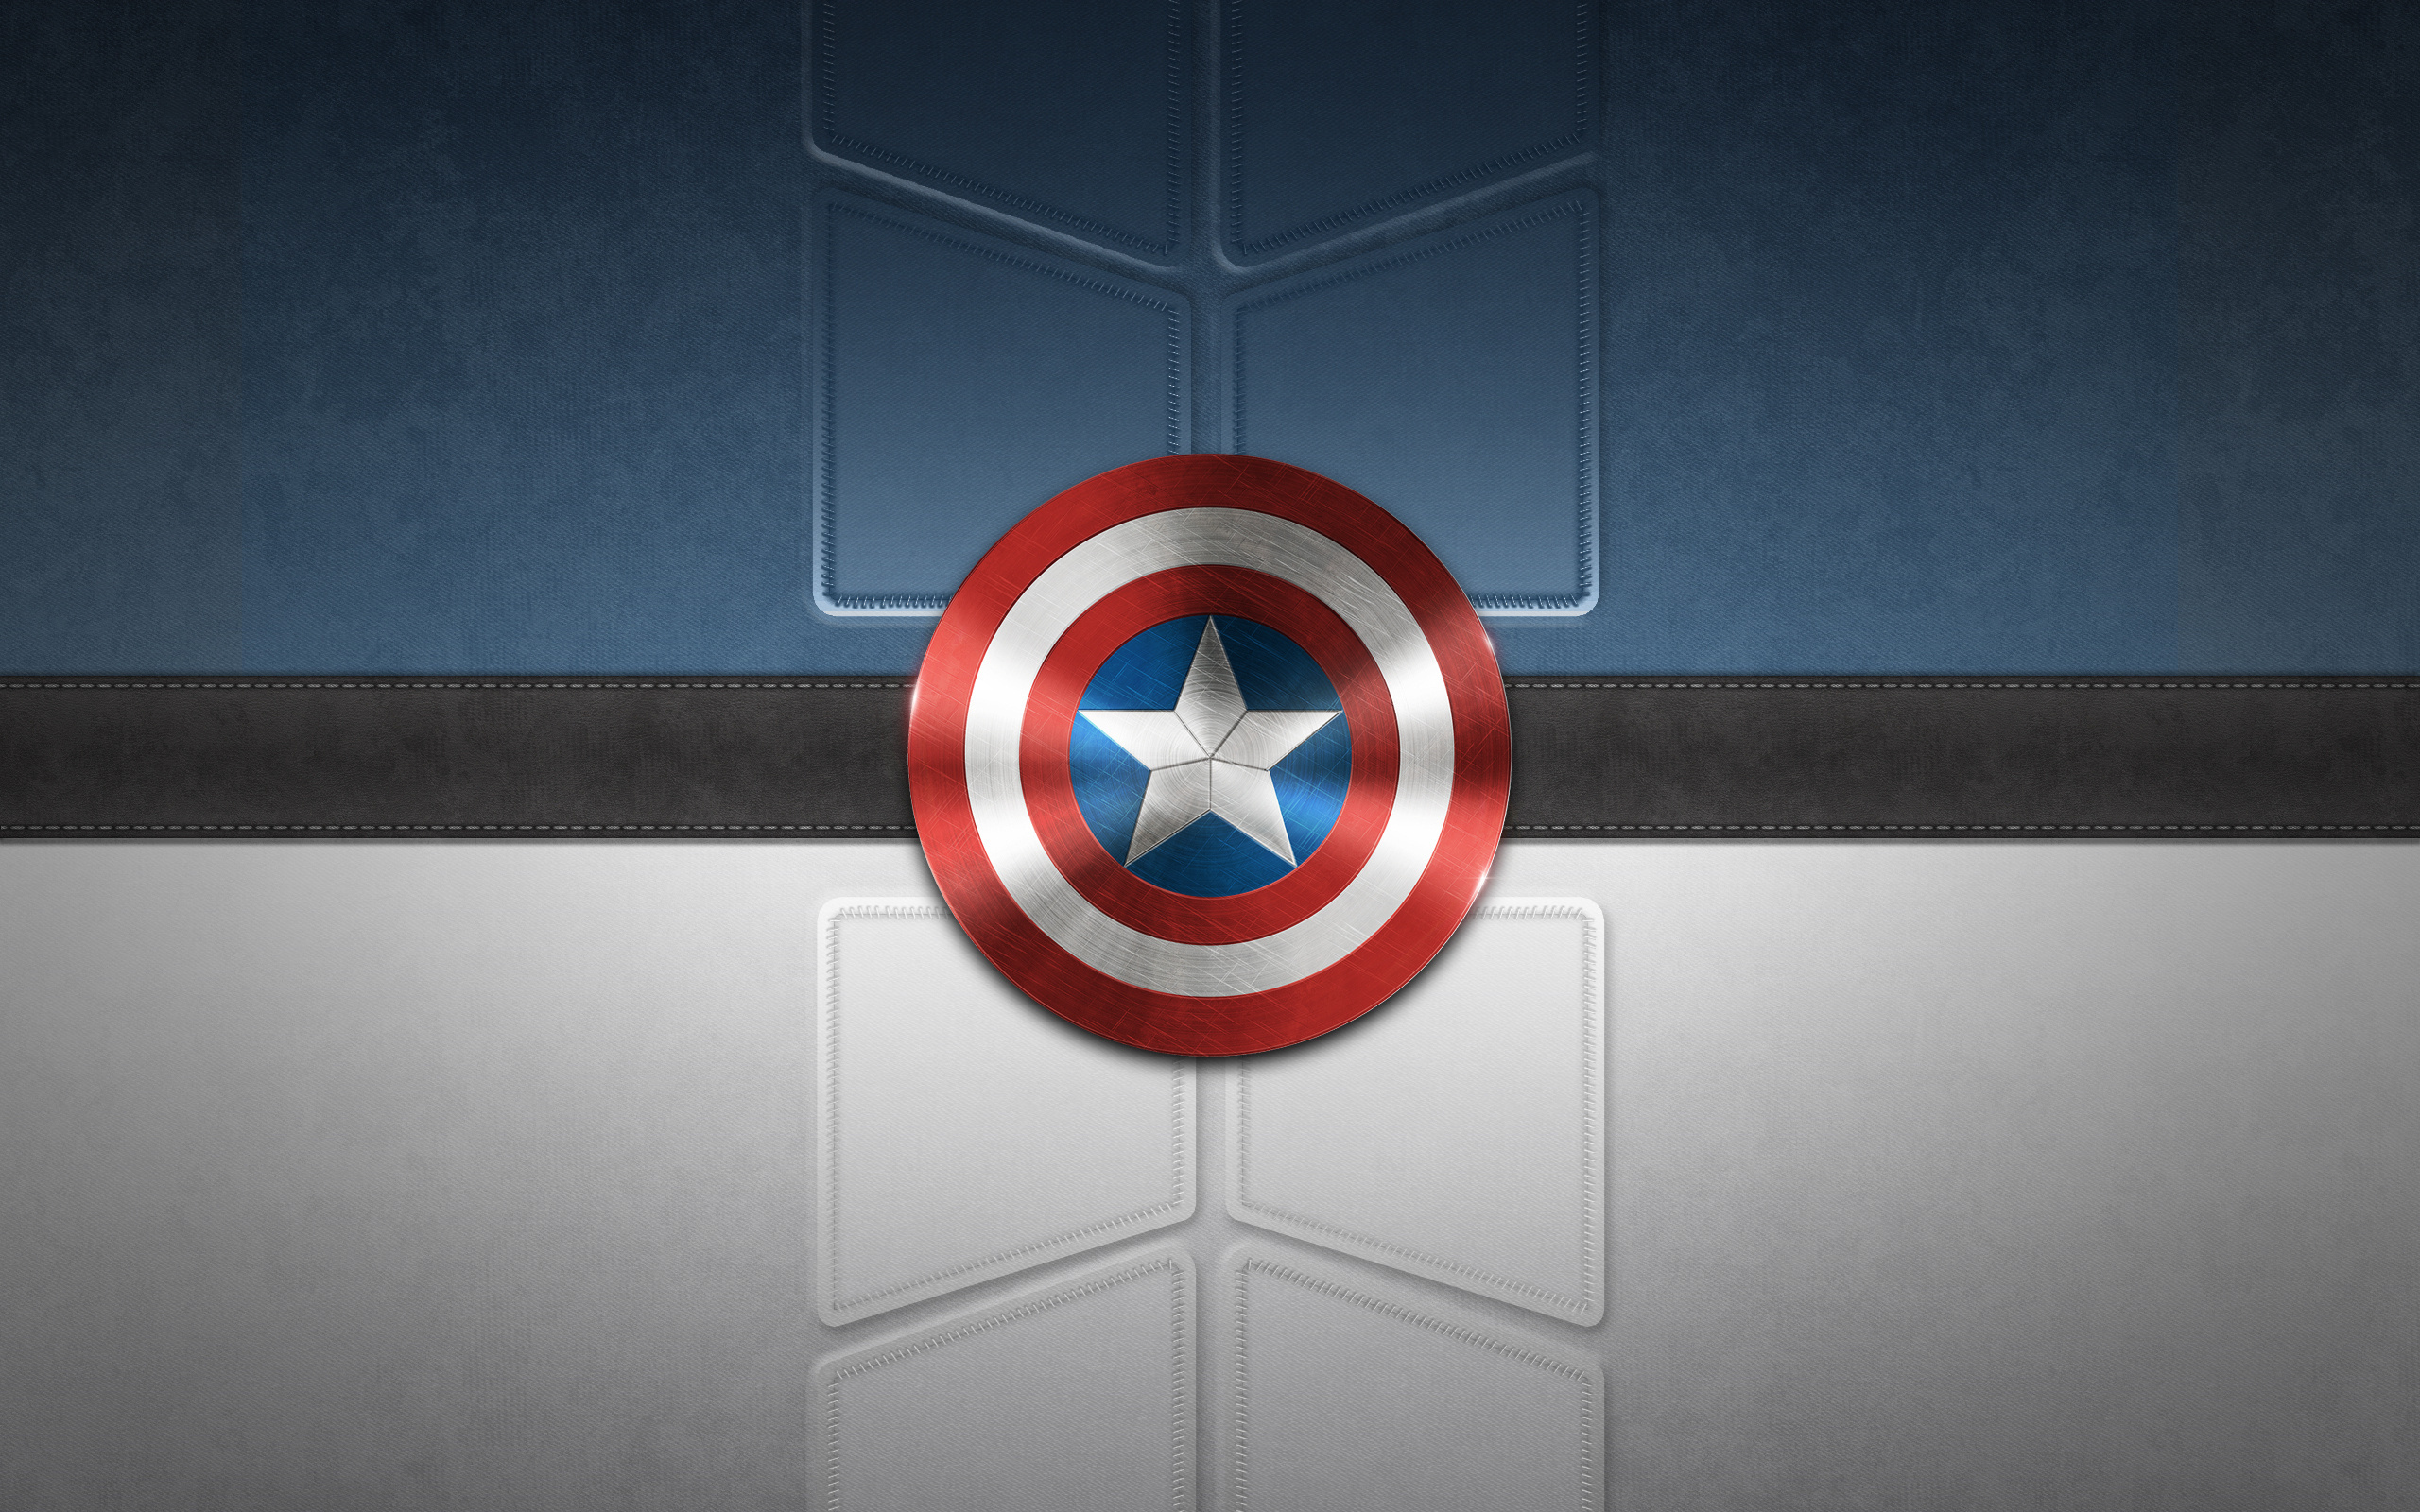 Hd wallpaper captain america - Captain America Desktop Background